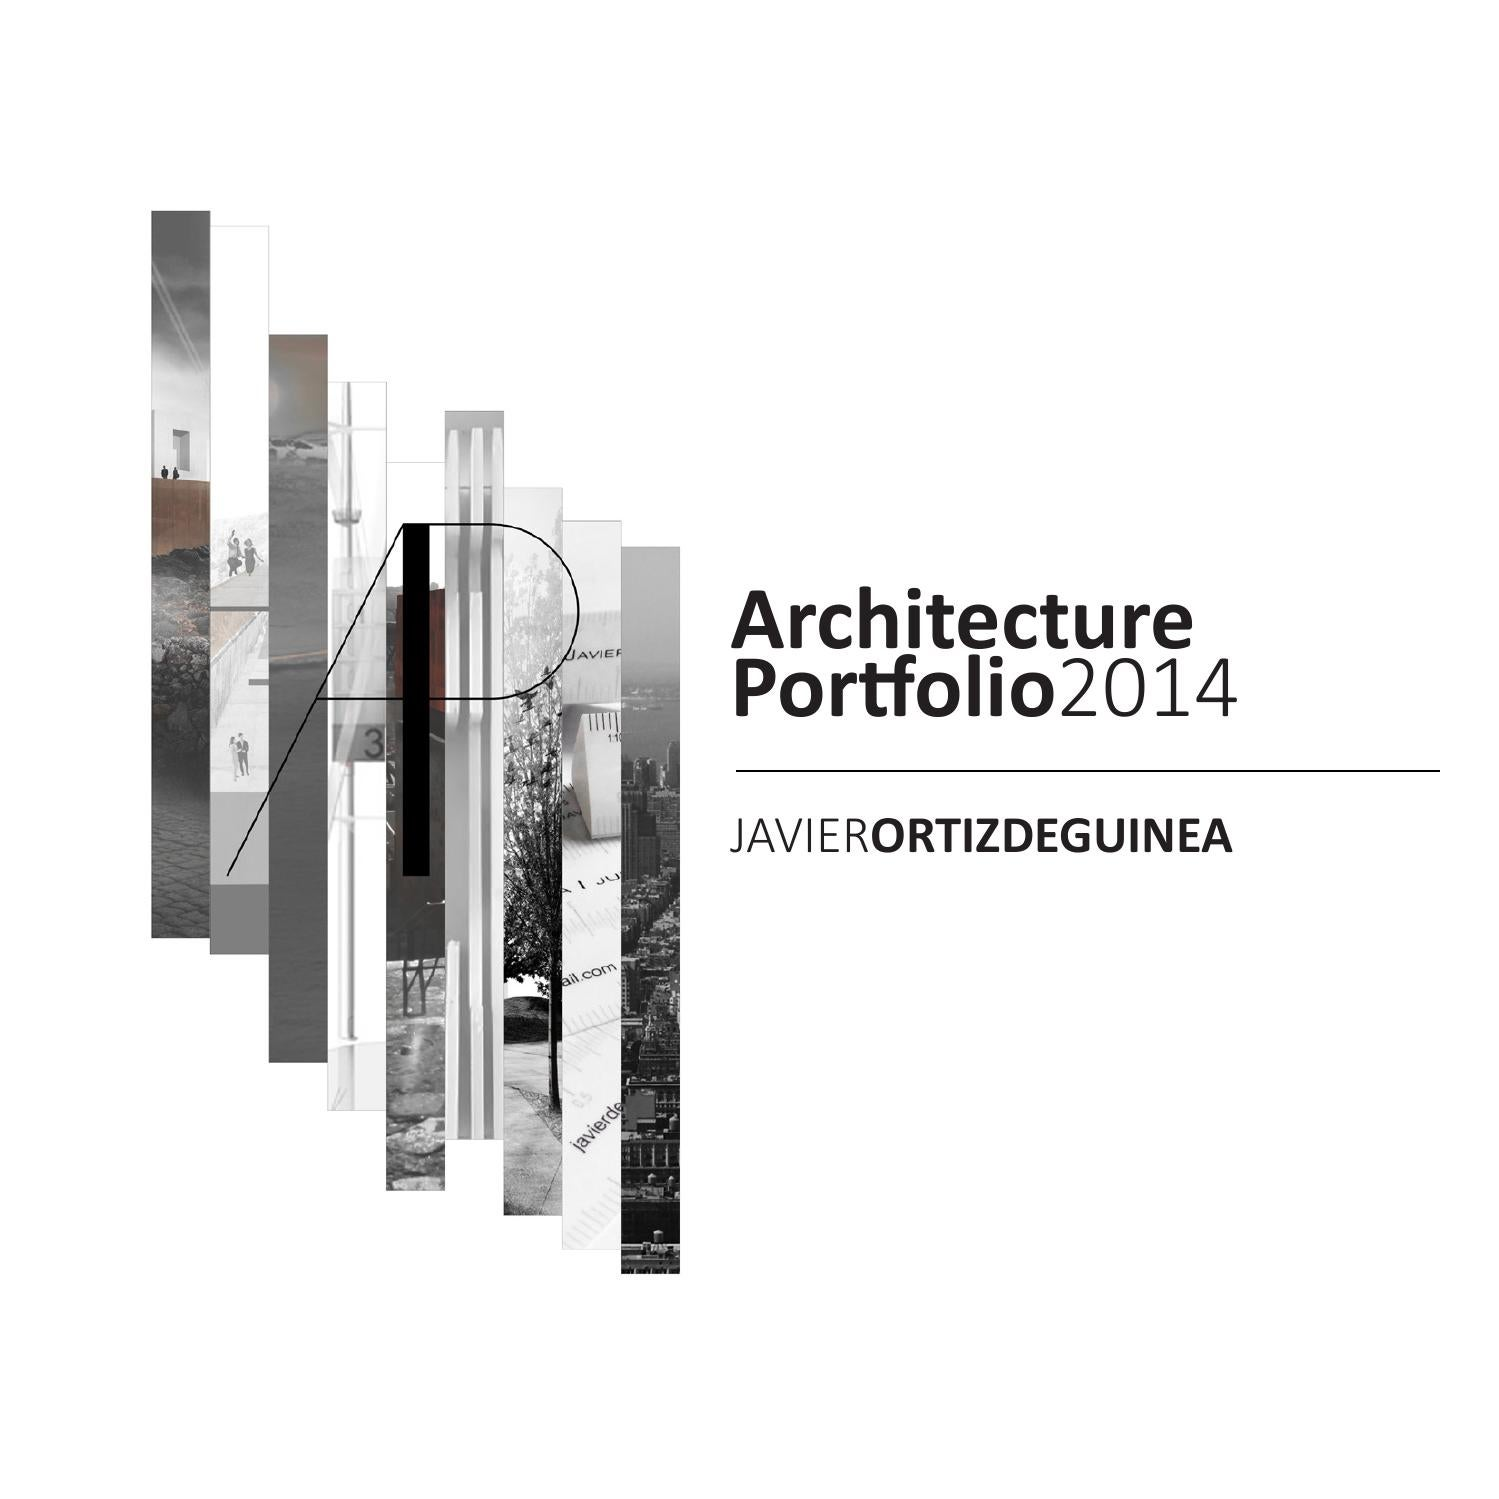 Gallery of The Best Architecture Portfolio Designs - 2